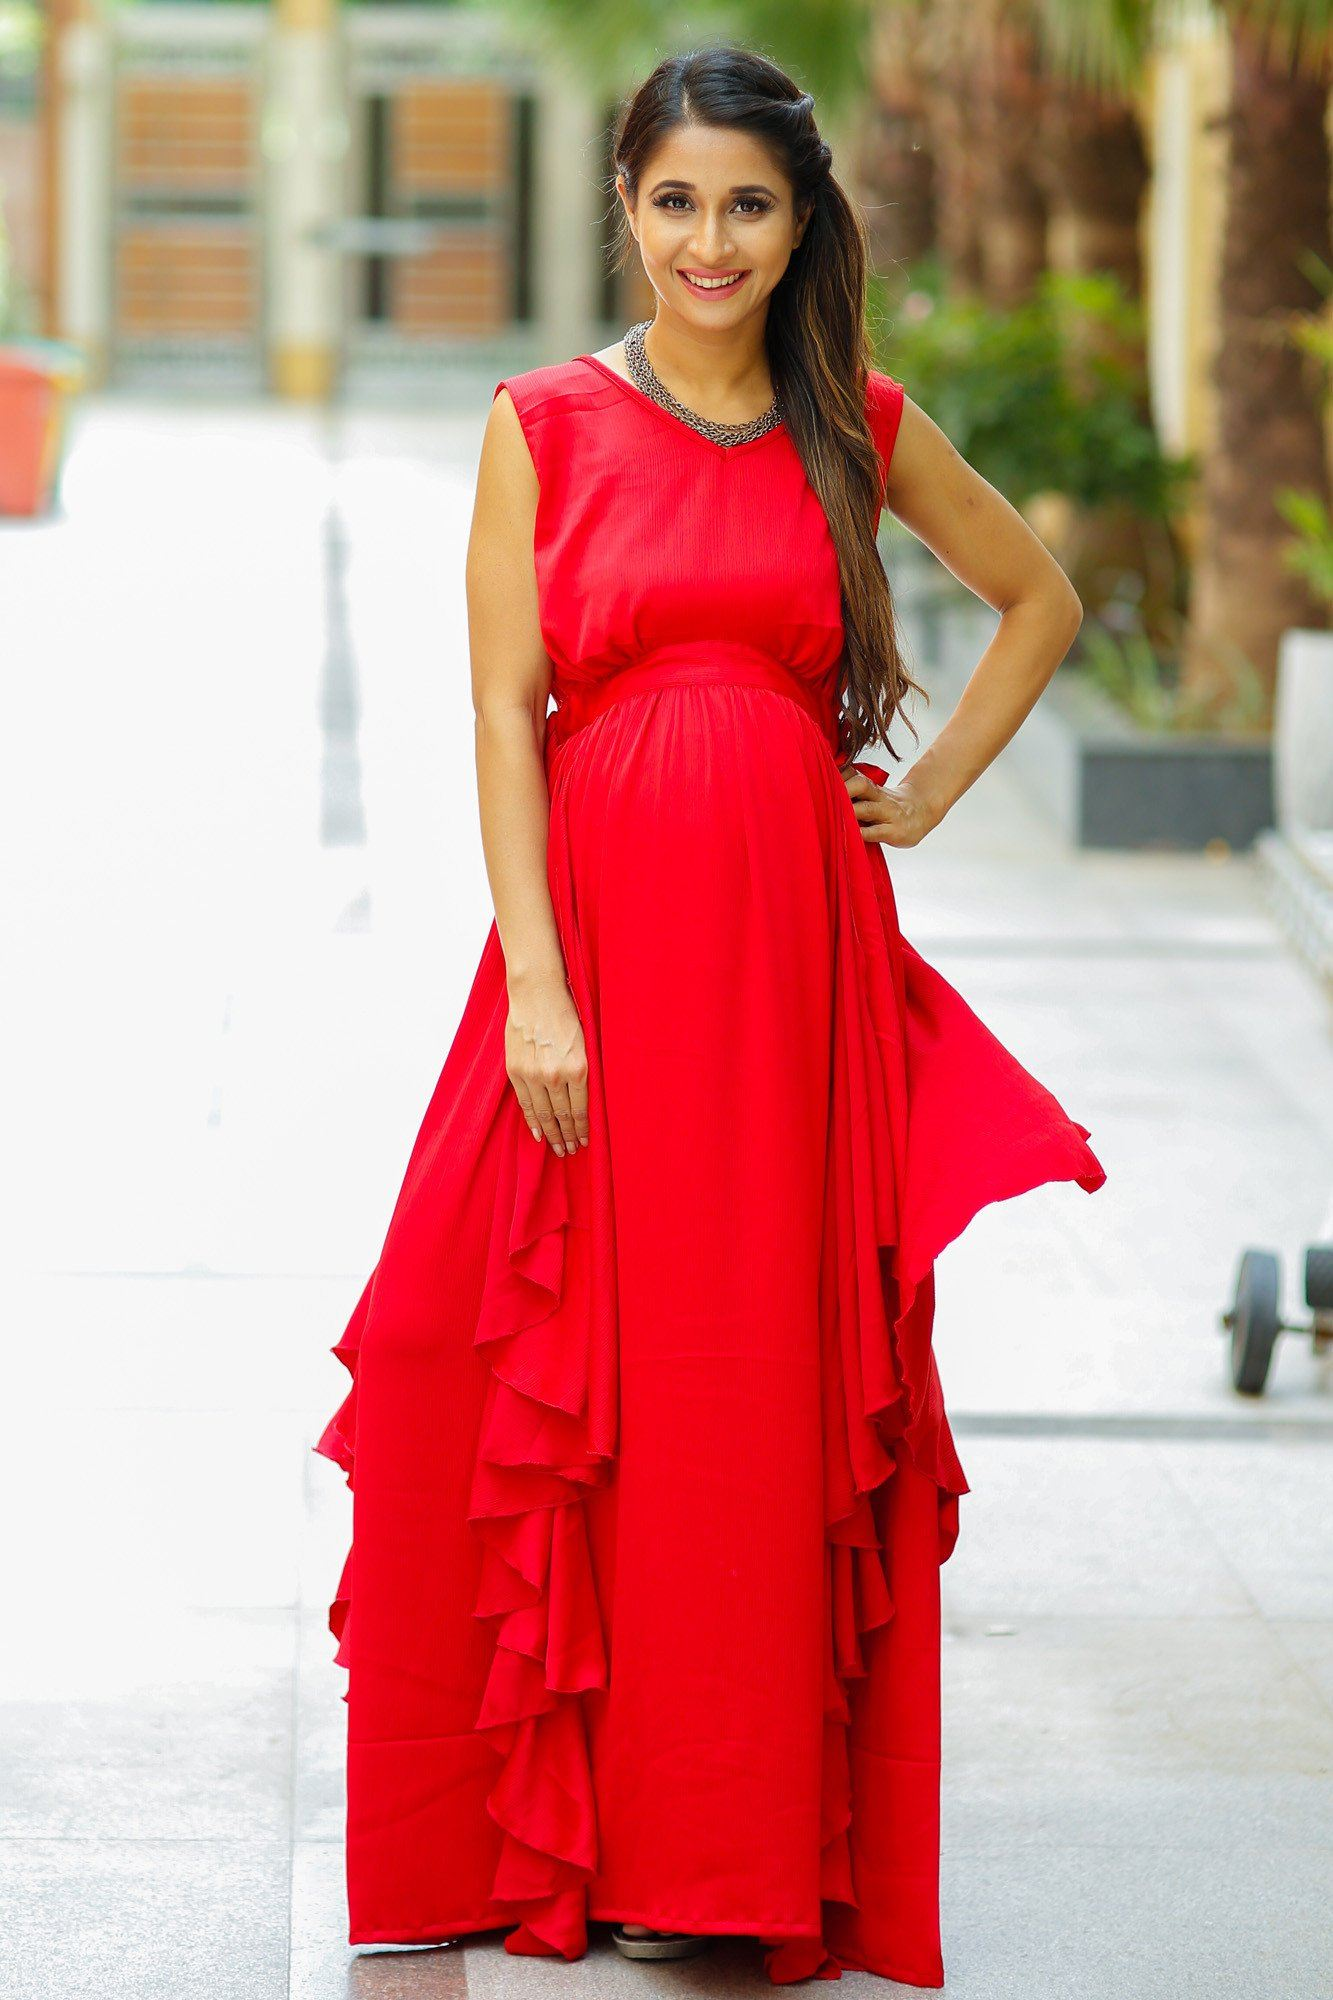 65f85c87535 Maternity Dresses For Photoshoot Canada